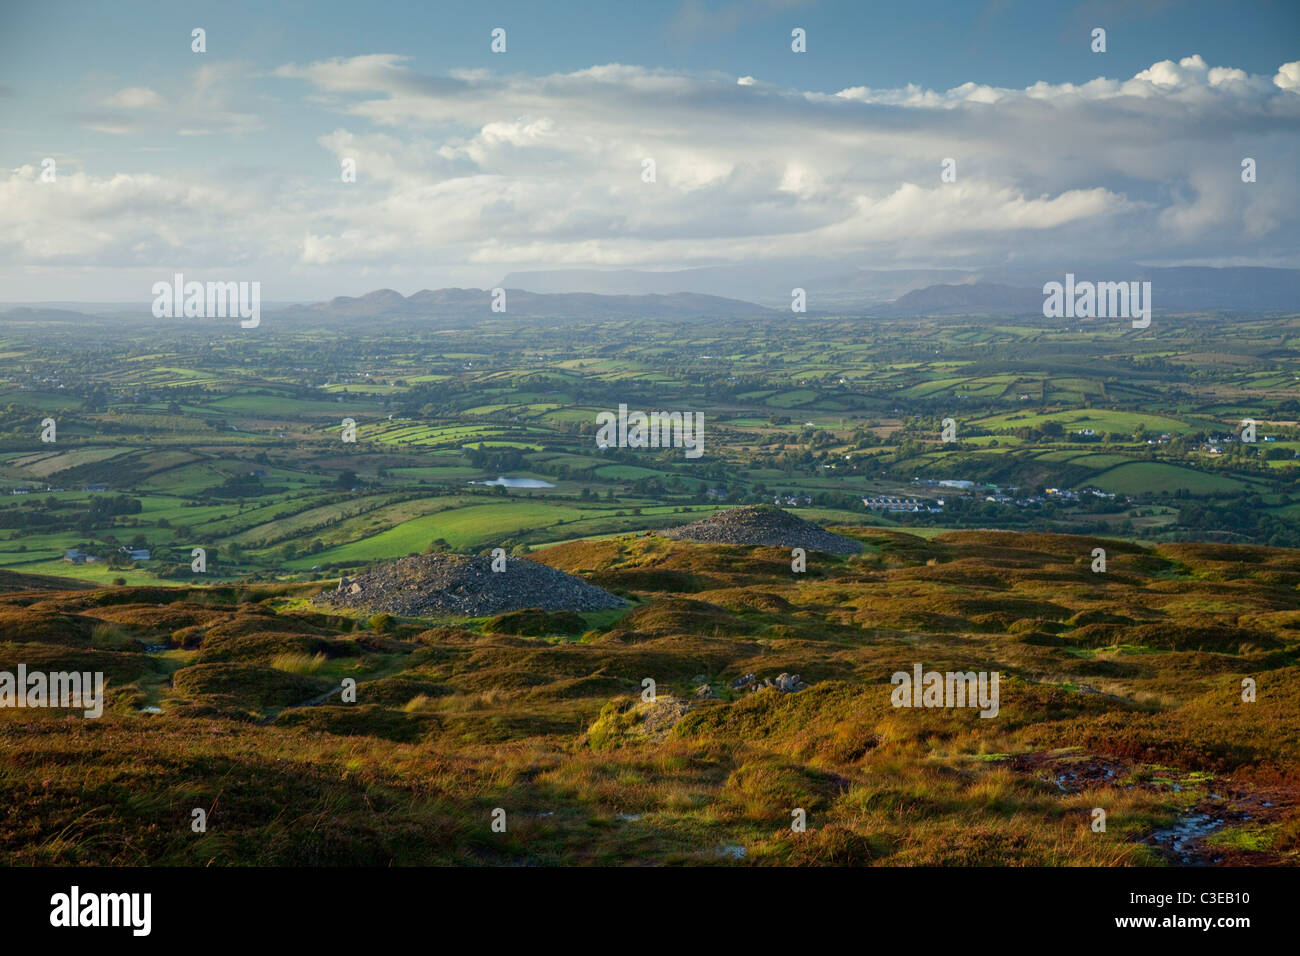 Carrowkeel Passage Tombs, which date from 3200-2400 BC, County Sligo, Ireland. - Stock Image